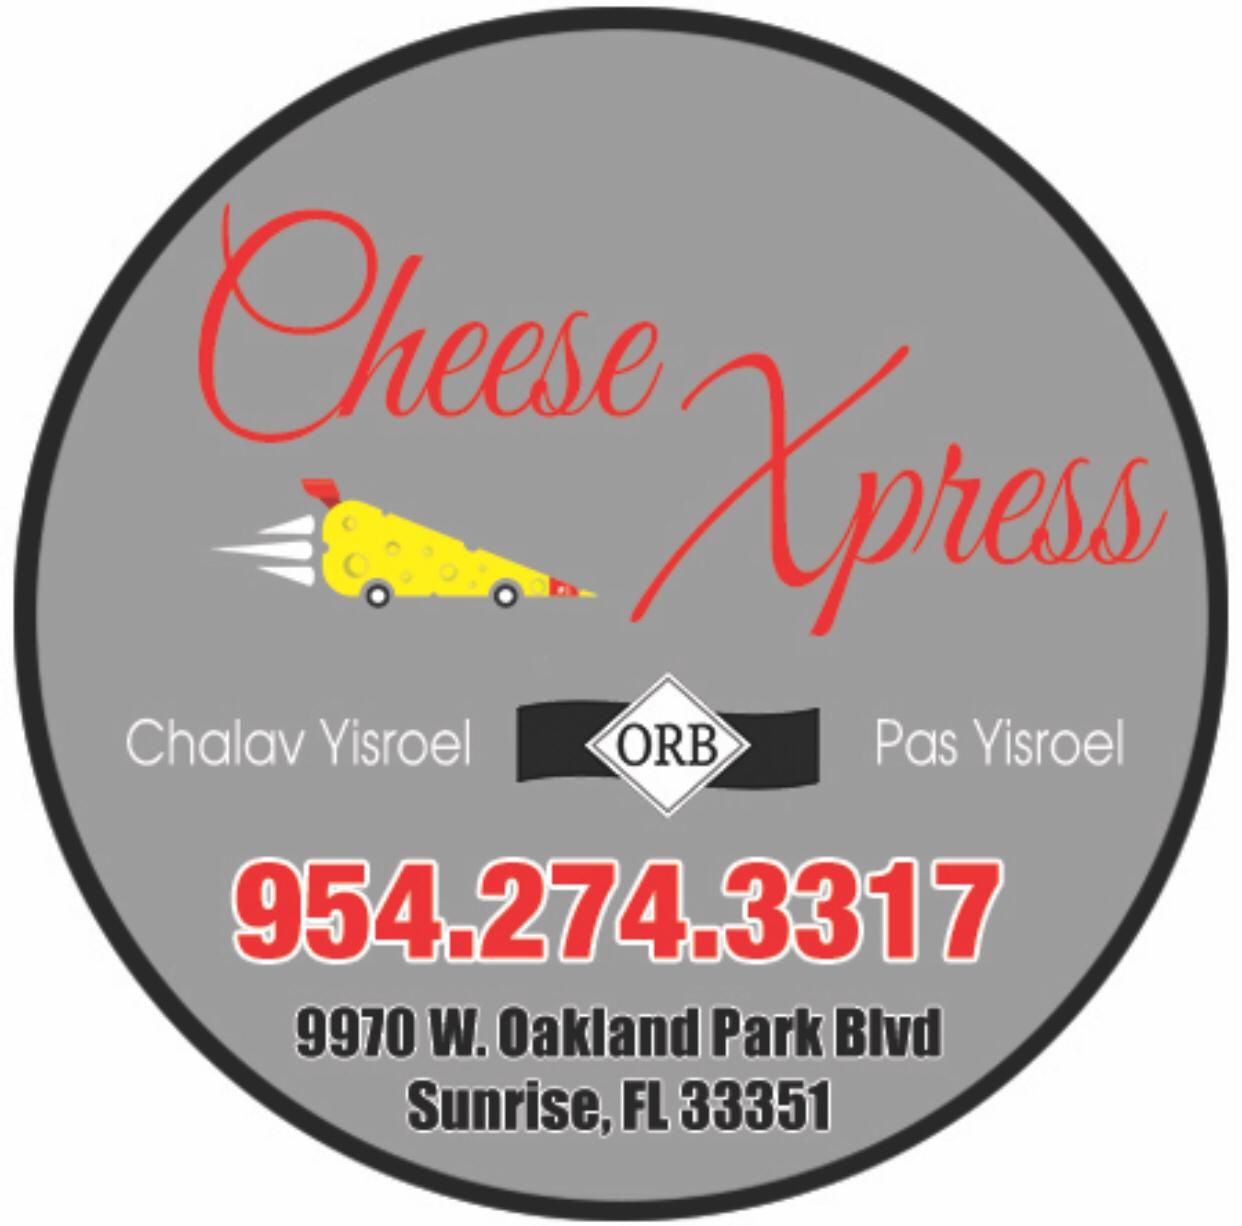 CHEESE XPRESS